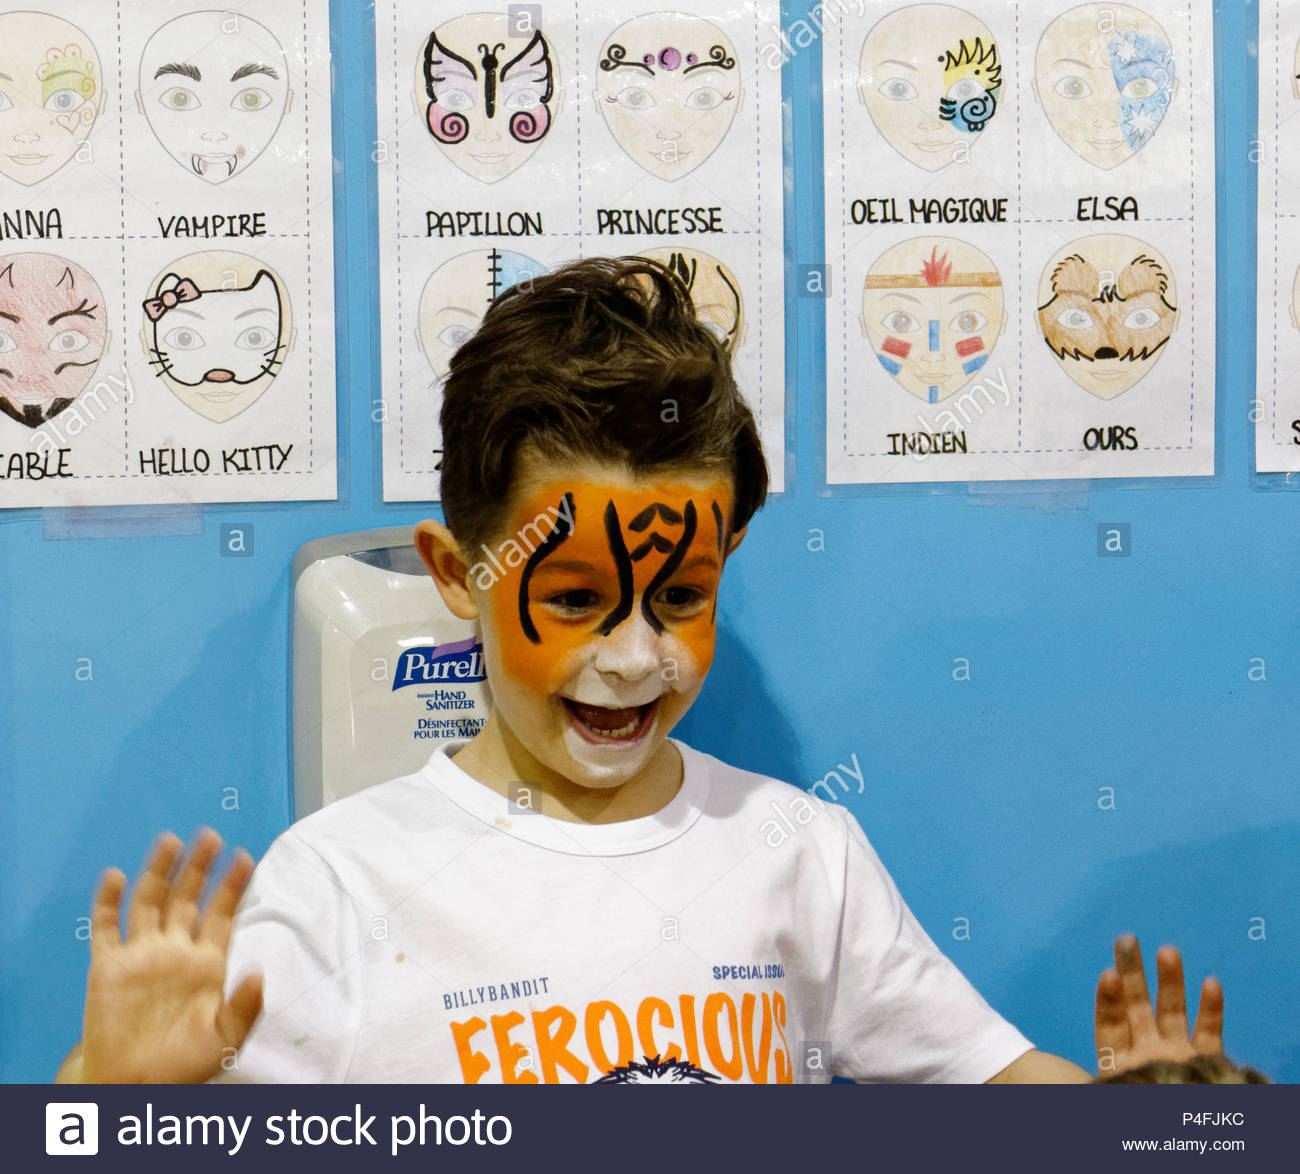 a-five-year-old-boy-looks-delighted-with-his-new-tiger-face-paint-P4FJKC.jpg